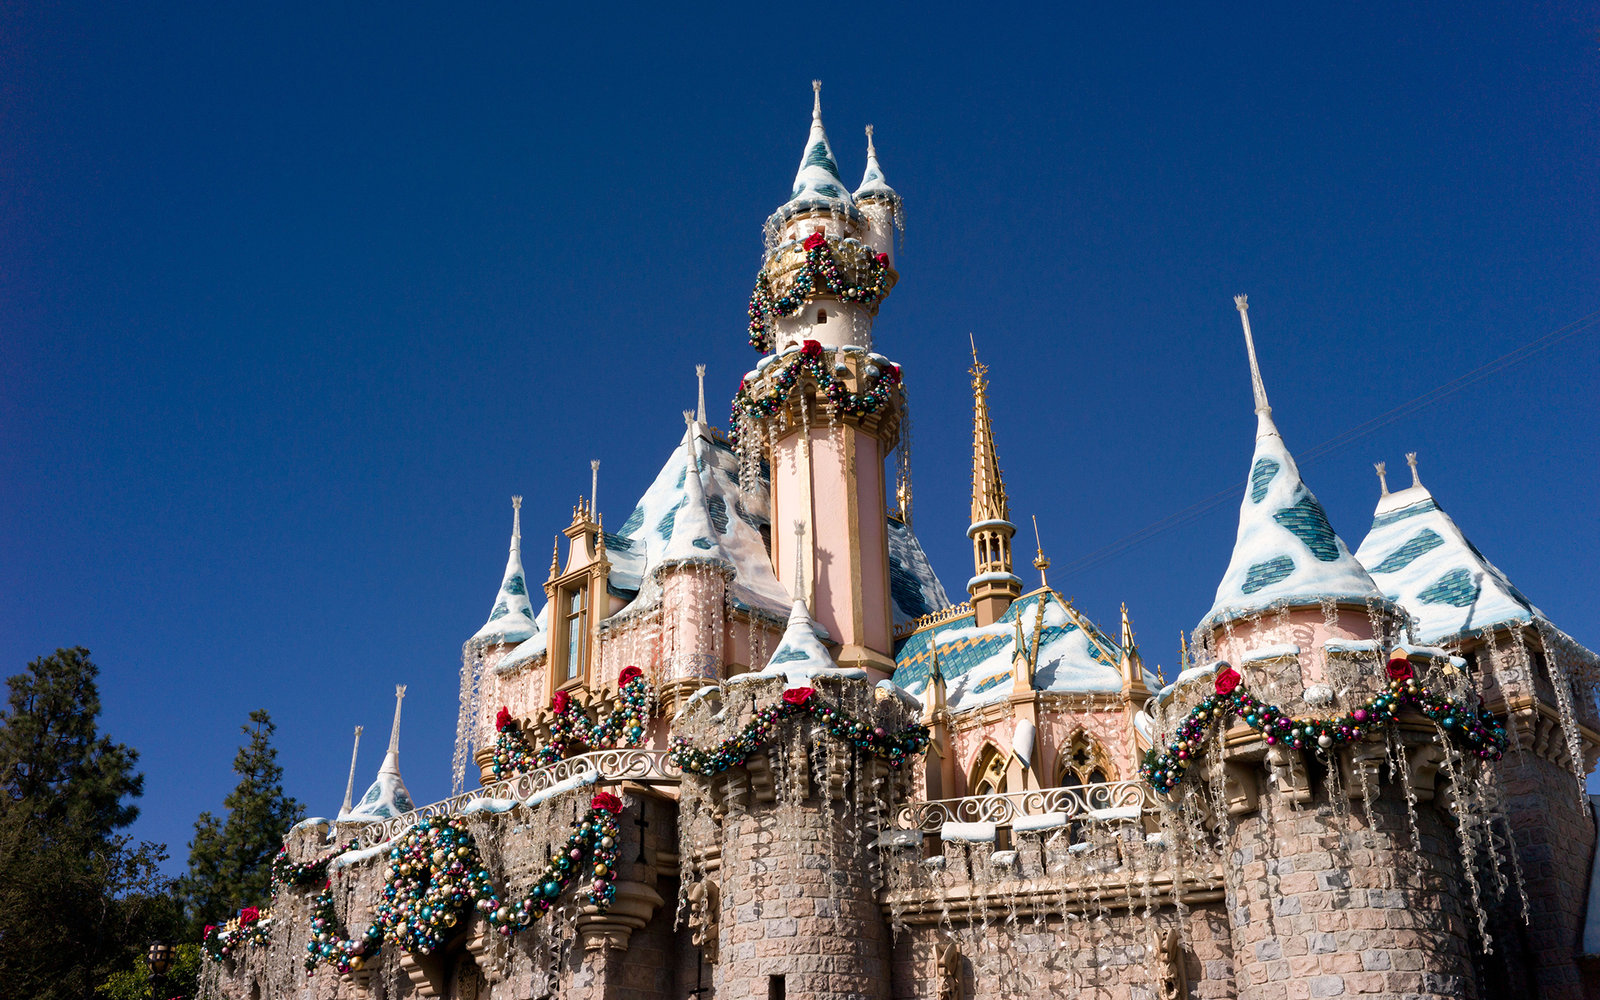 DT75J1 DISNEYLAND SLEEPING BEAUTY CASTLE AT CHRISTMAS